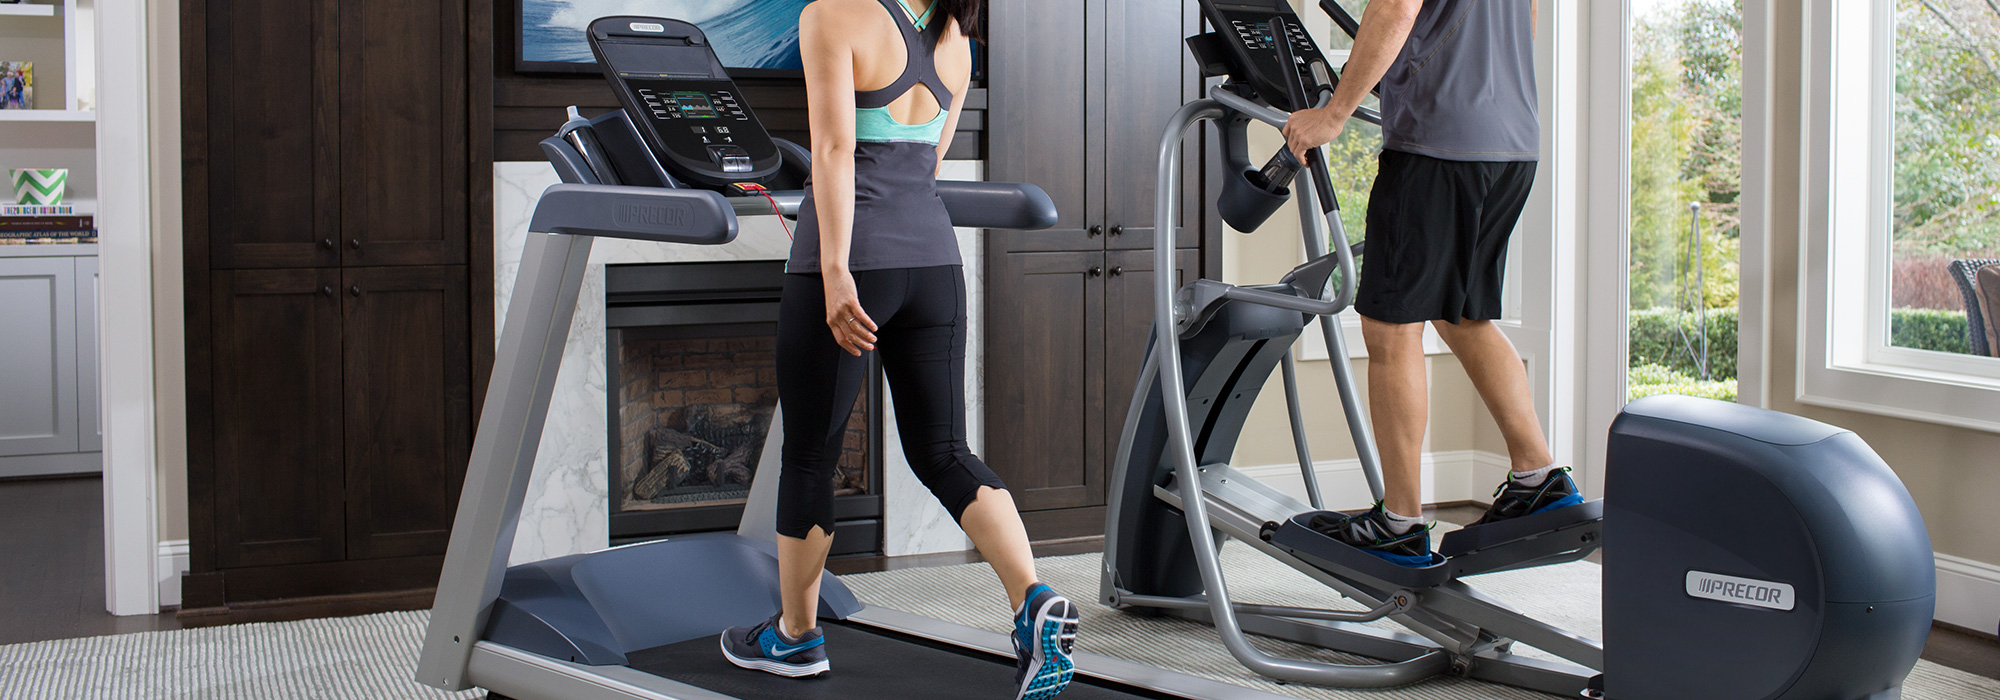 25% Off Precor Floor Models